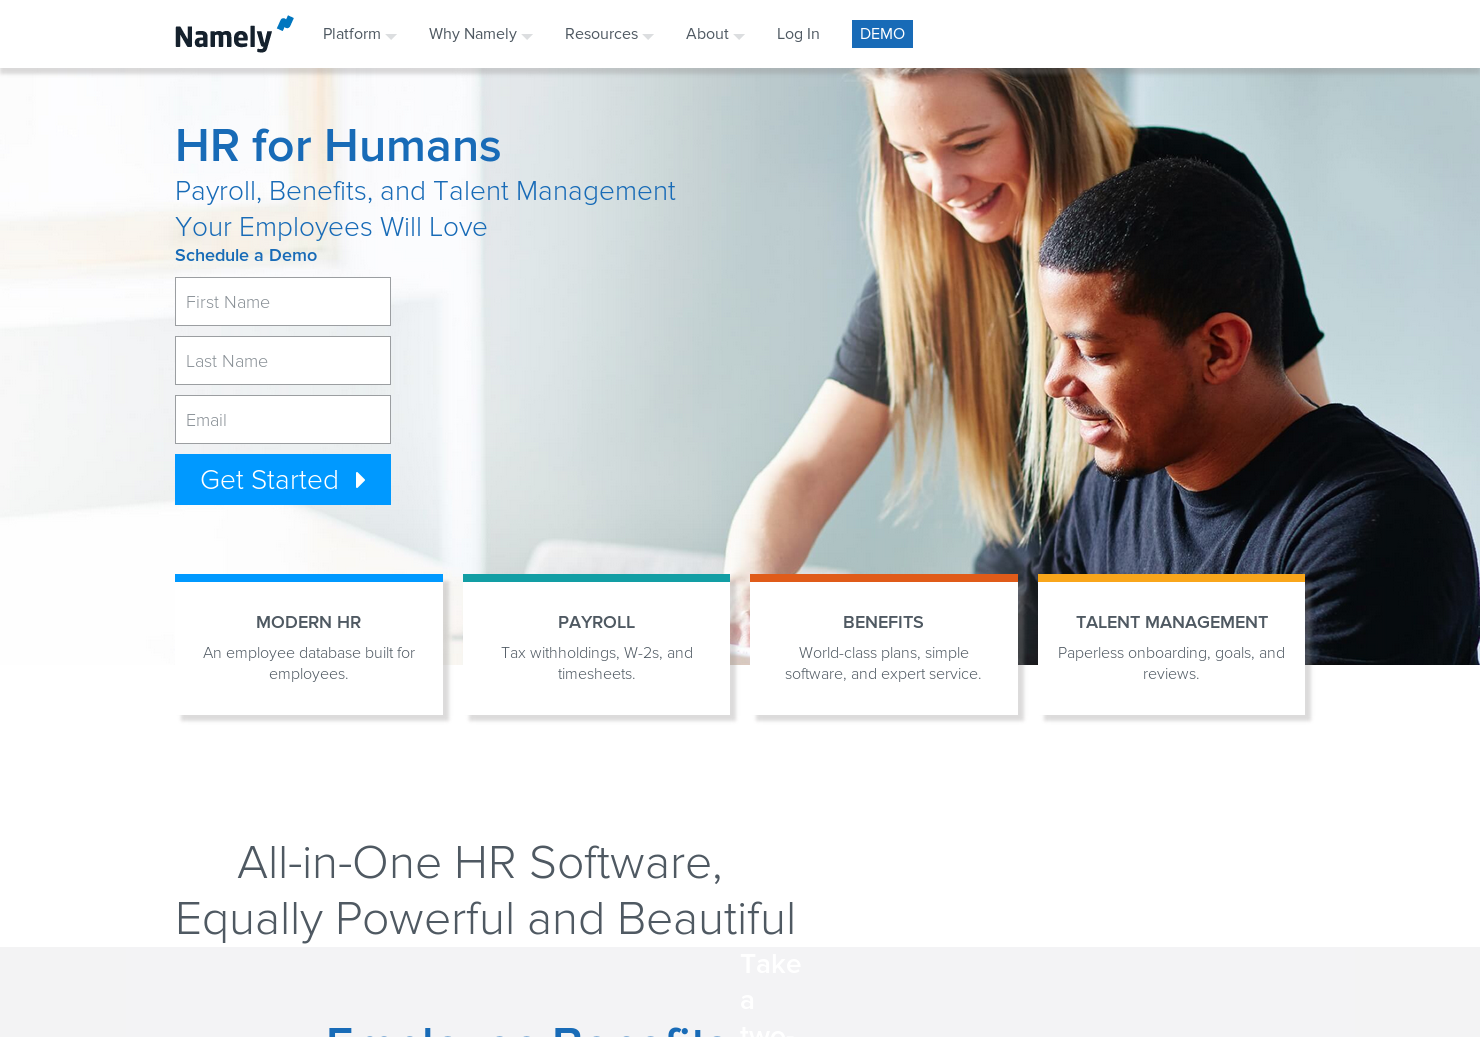 Namely - The HR platform for companies serious about growth